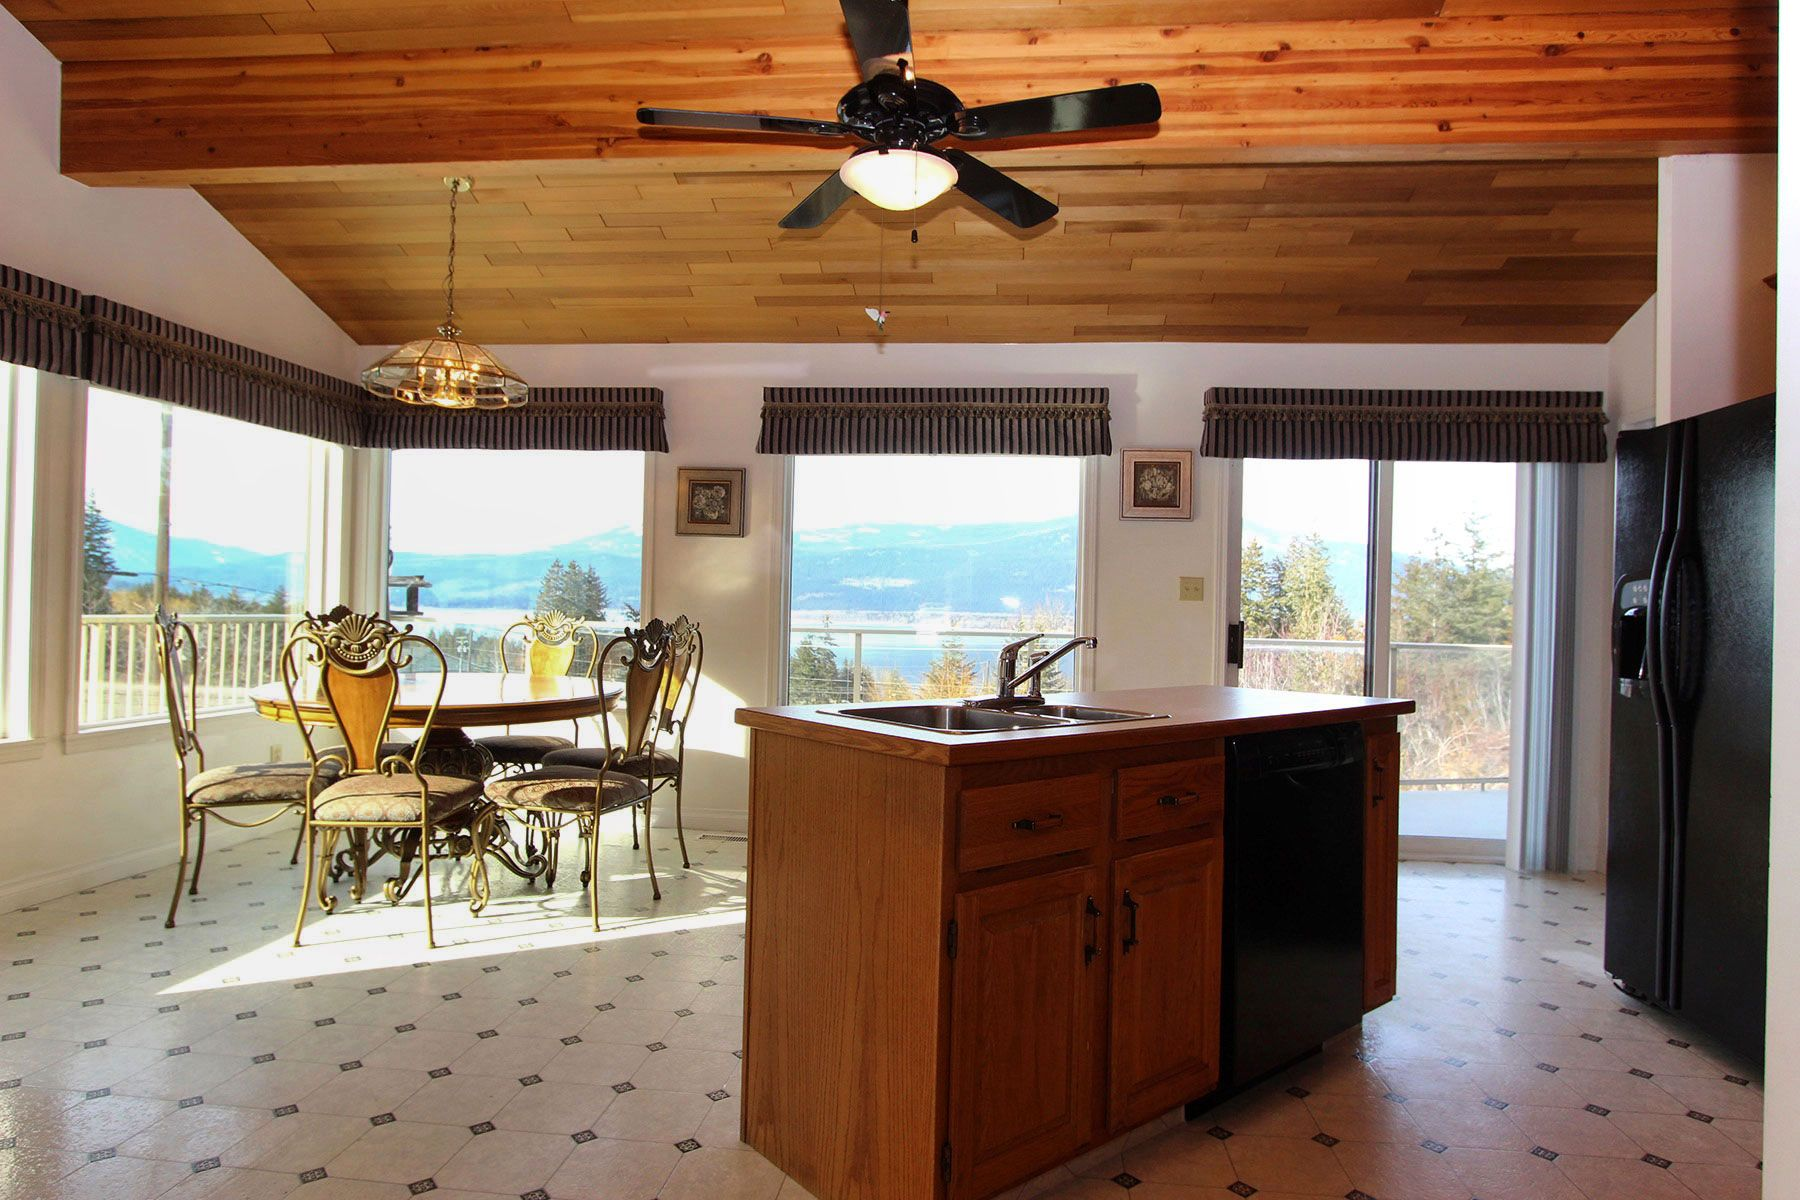 Photo 16: Photos: 1350 Trans Canada Highway in Sorrento: House for sale : MLS®# 10225818